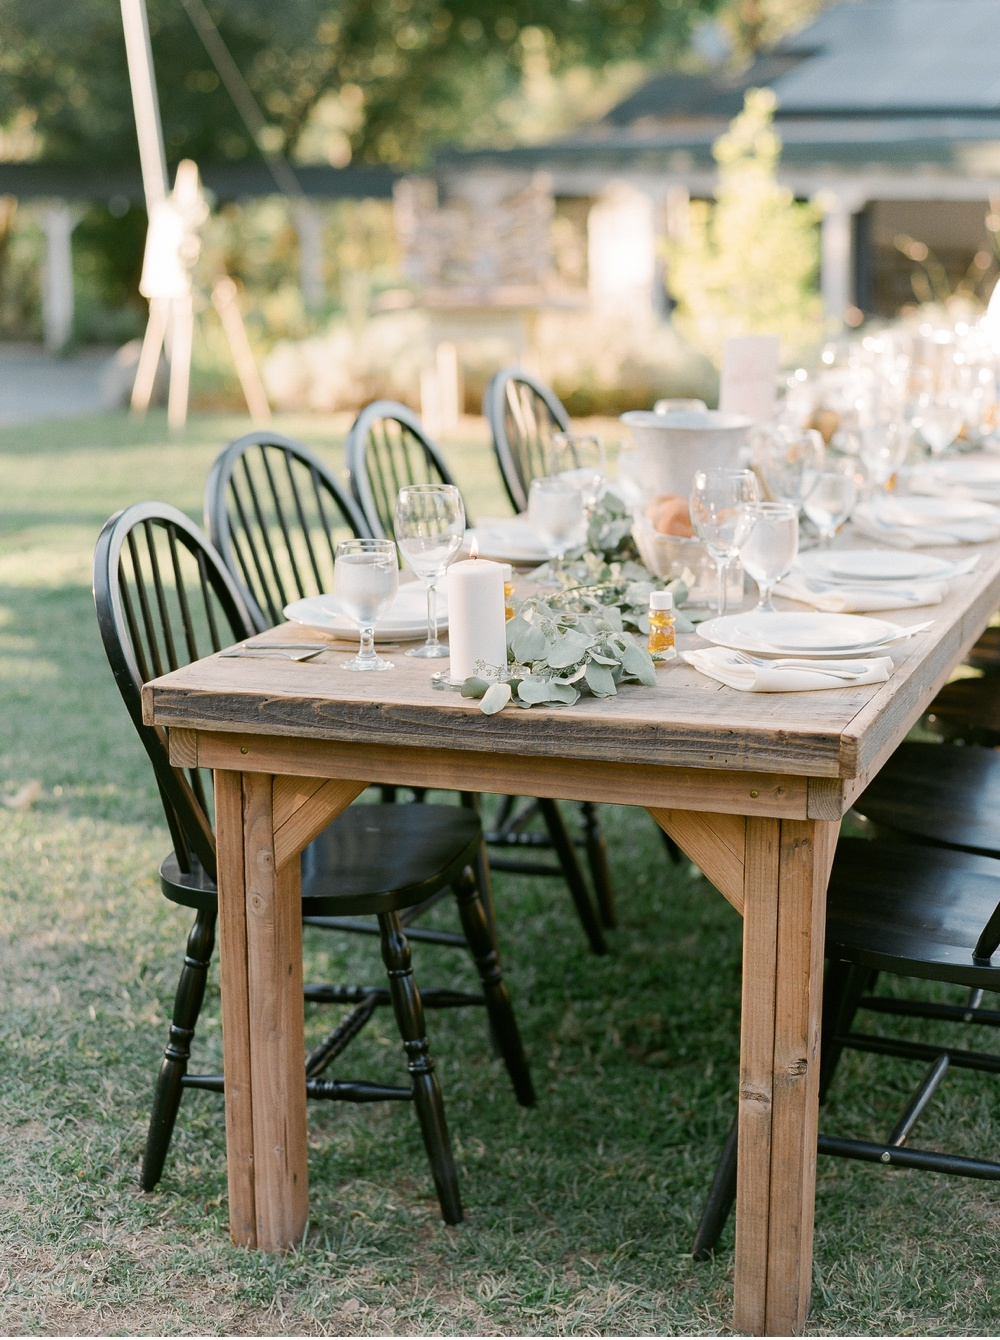 Napa_Valley_Wedding_Photographer©MadalinaSheldon_0025.jpg